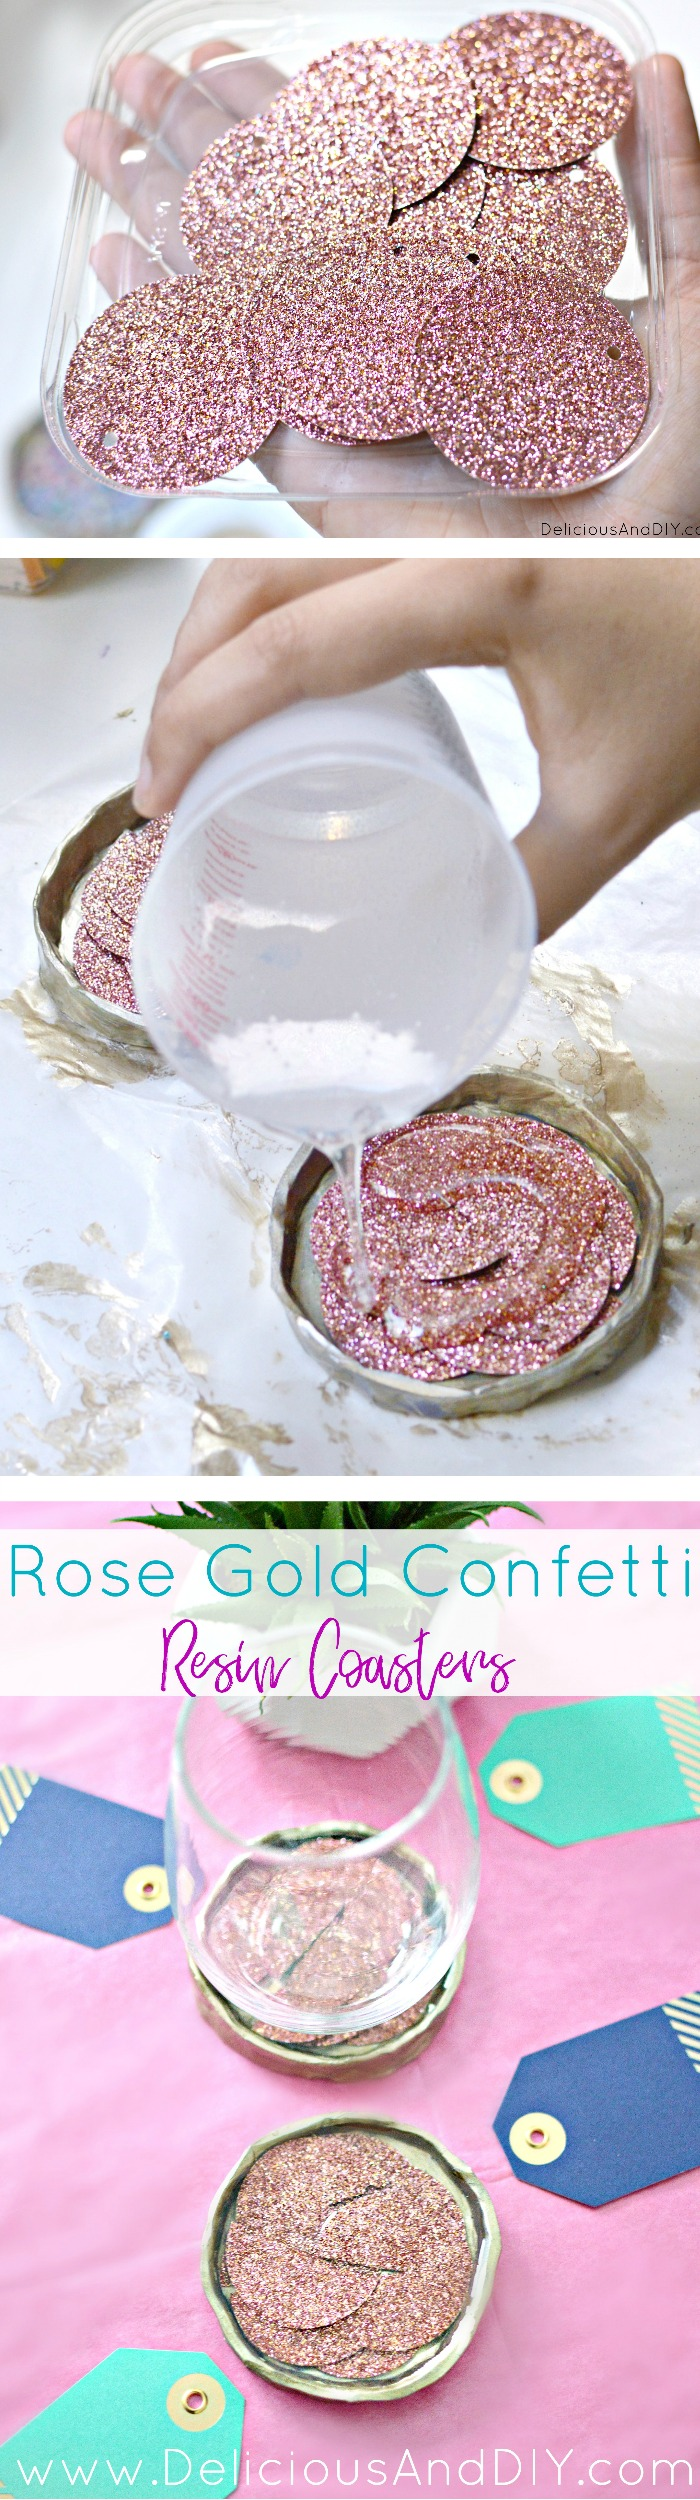 Create these Rose Gold Resin Confetti Coasters which are great for the holidays or home decor and even perfect as gifts| Home Decoration| DIY Crafts| Coaster Ideas| Resin Coaster DIY| Confetti Coasters| Confetti Crafts| Glitter Resin Coasters| Handmade Coaster| Rose Gold Decoration| Gift Ideas for Holidays| Oven Bake Clay Projects| Oven Bake Clay Crafts